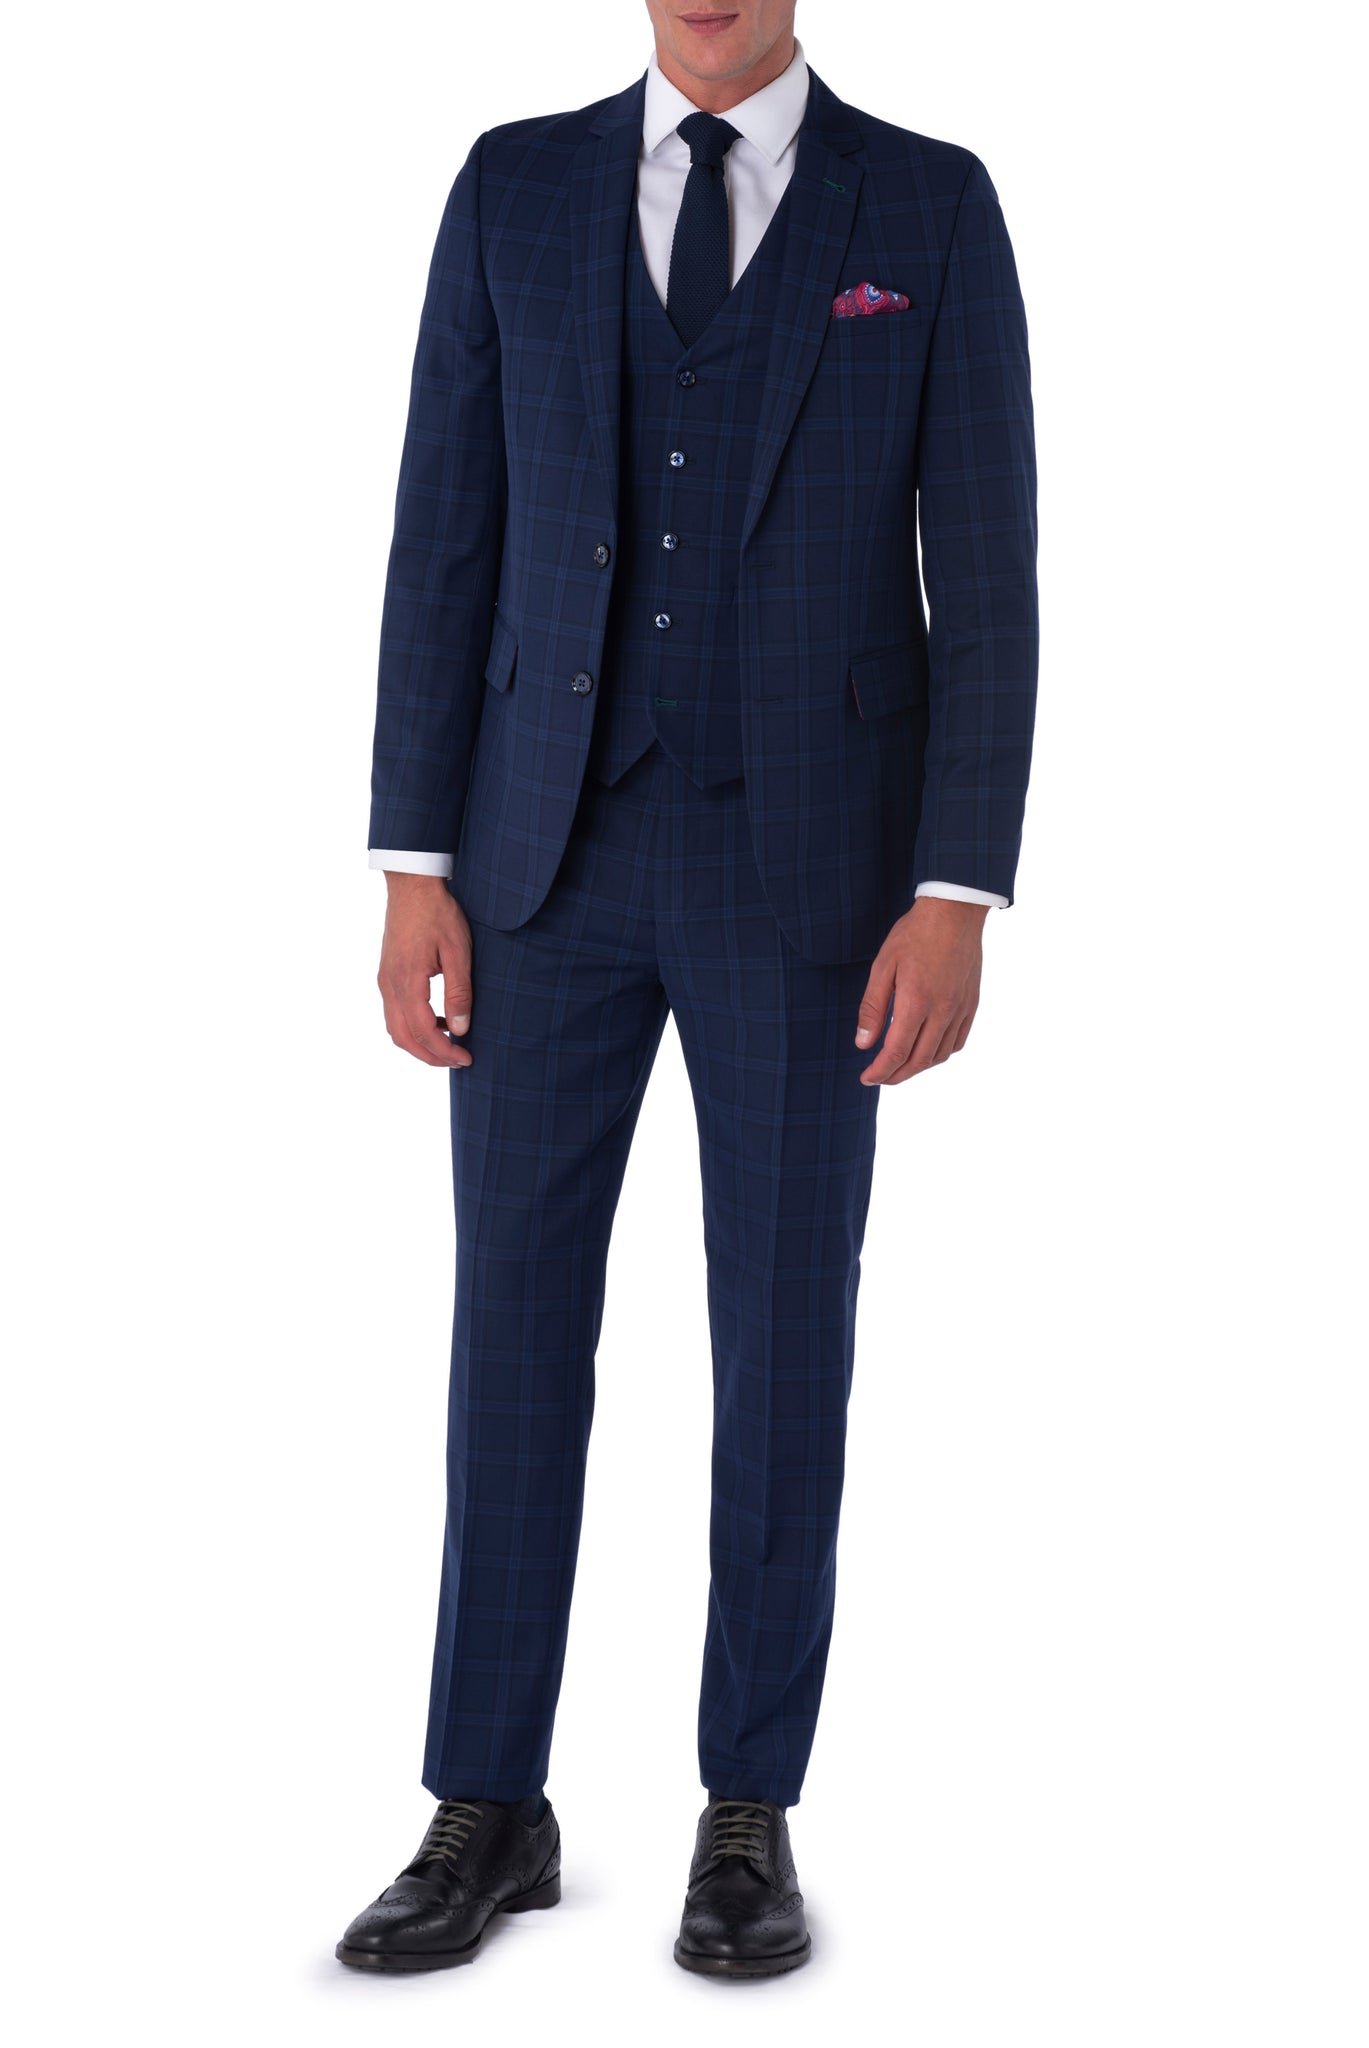 JACOB Navy Blue Check Three Piece Suit